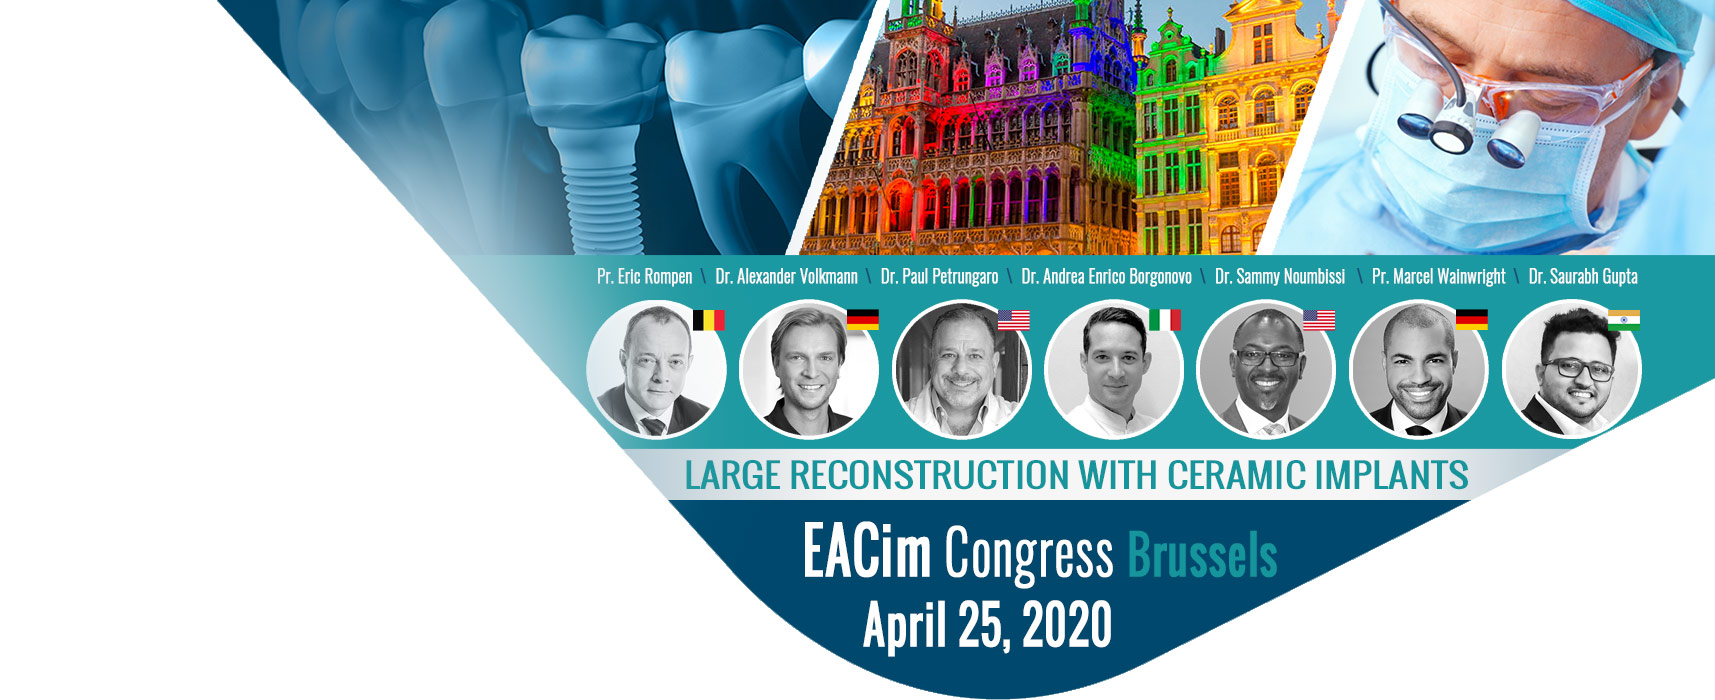 2nd EACim Congress in Brussels - Large reconstruction with ceramic implants